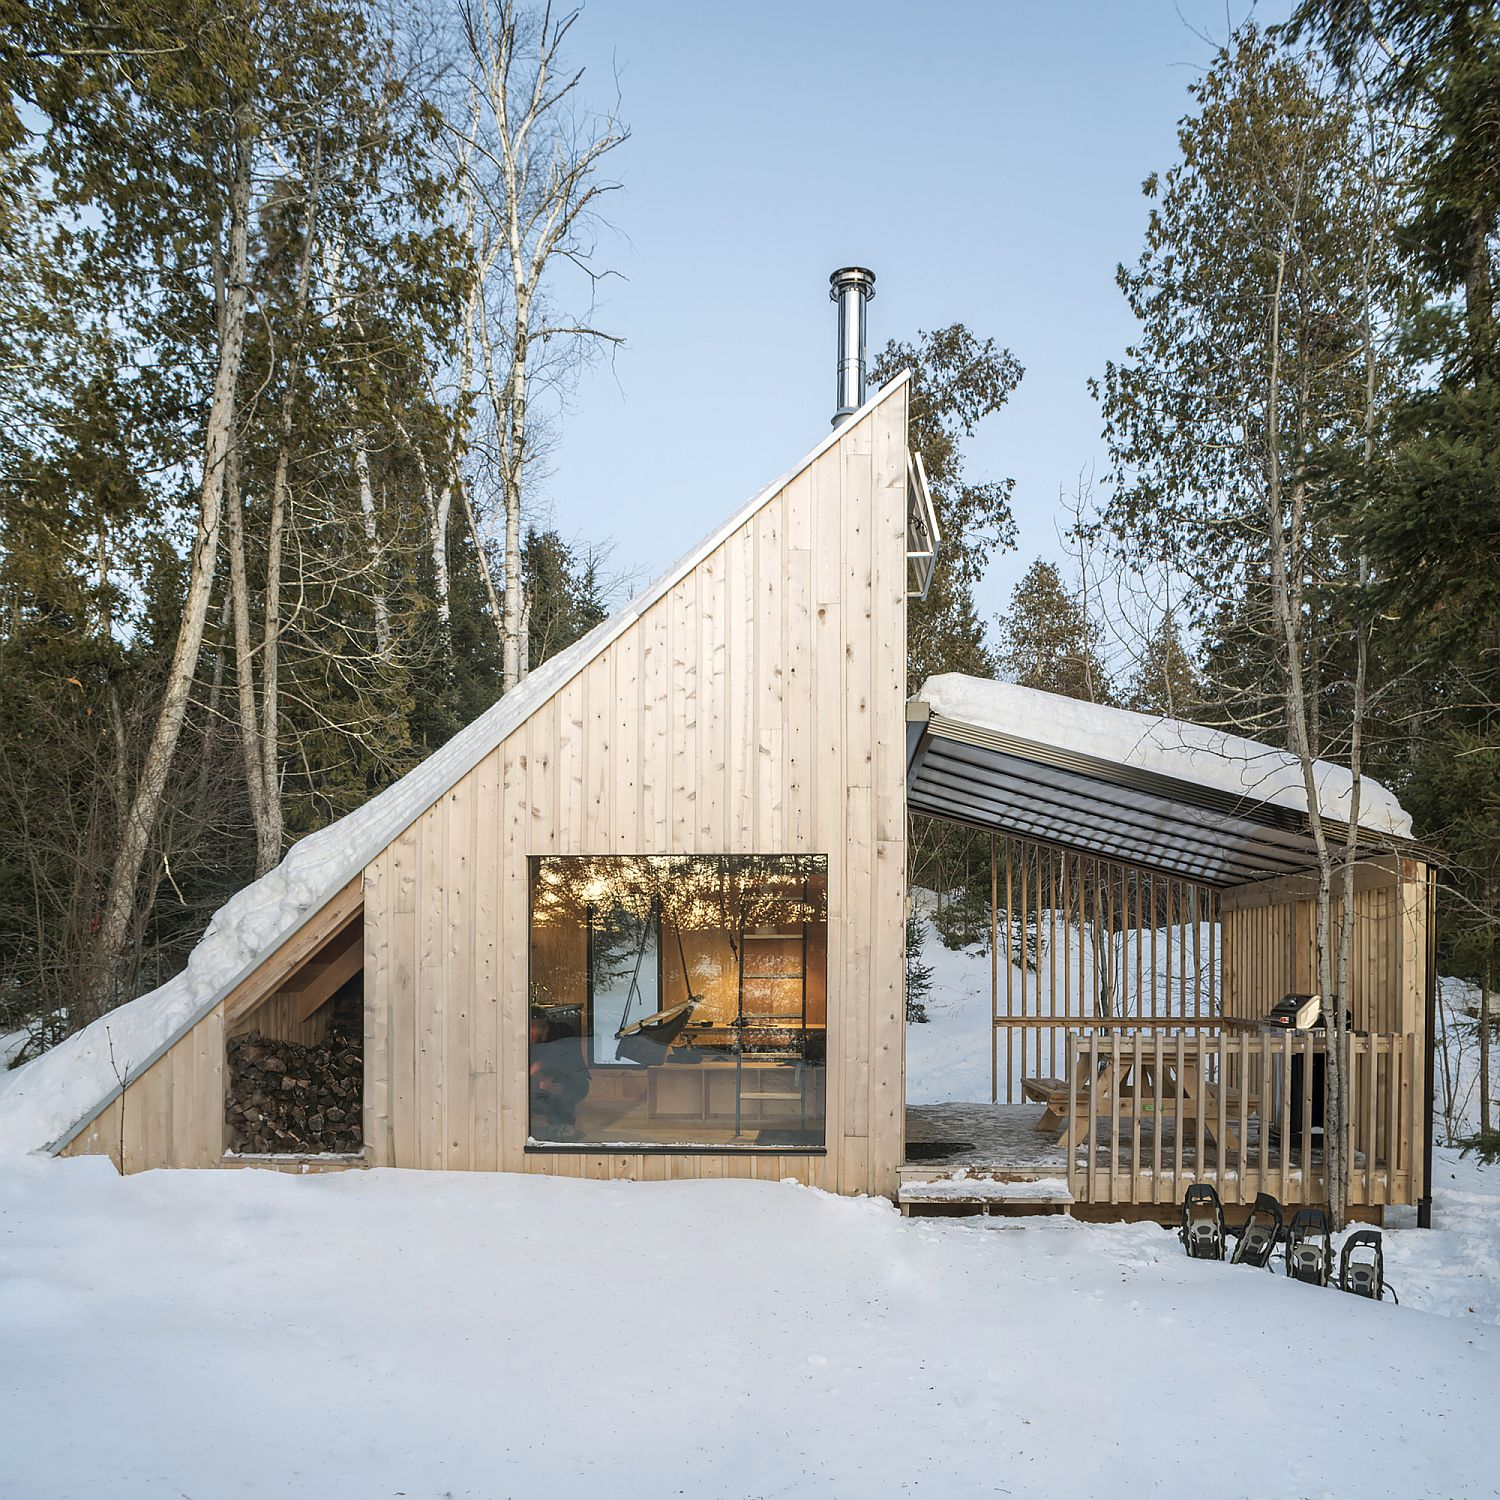 Triangular frame of the cabin is inspired by A-frame homes of the 50's